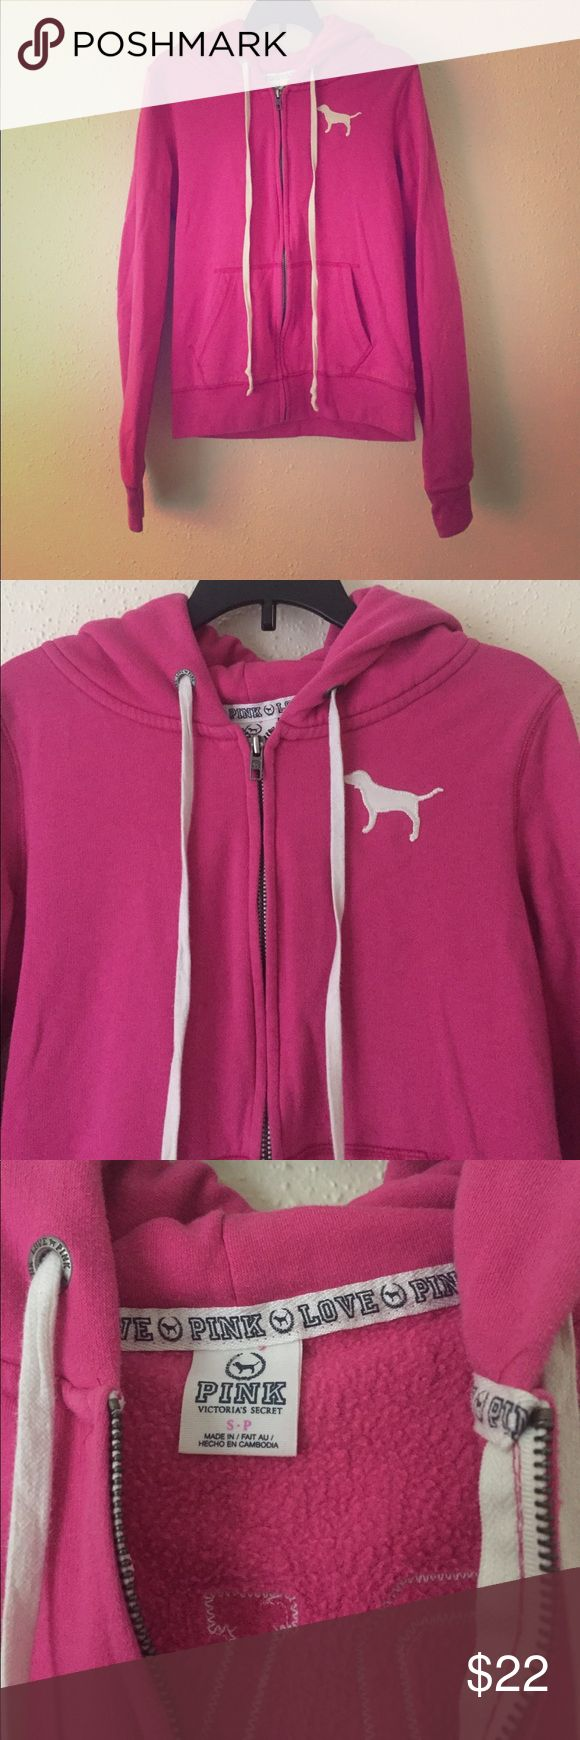 PINK Zip Up Hoodie Bubblegum pink zip up hoodie. Soft and comfy! Two front pockets. LOVE PINK embroidered on back. Gently worn. Some piling but no rips or stains. PINK Victoria's Secret Tops Sweatshirts & Hoodies